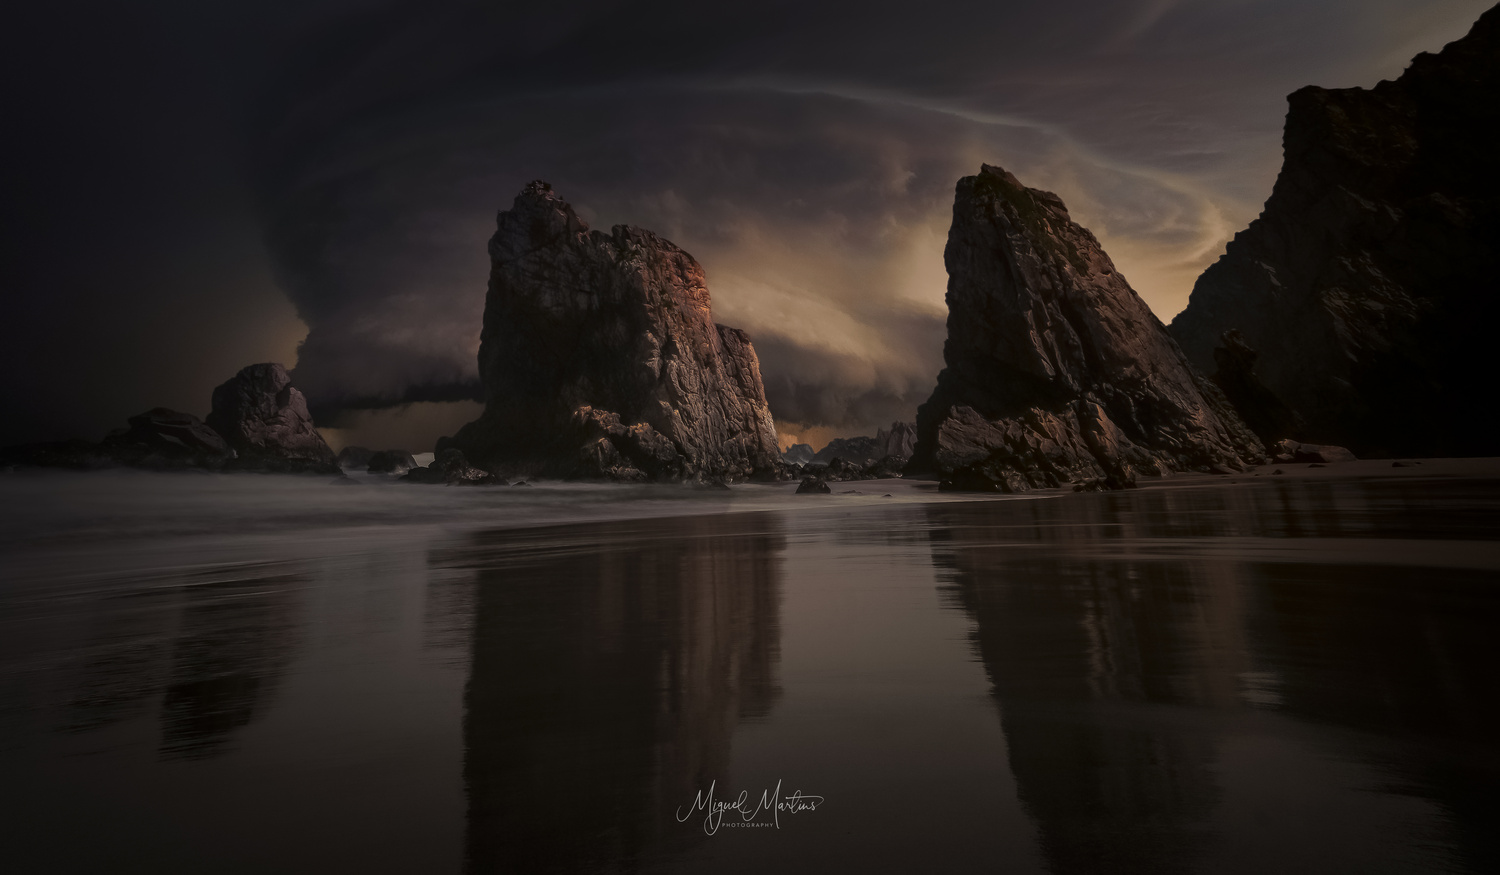 Another World by Miguel Martins